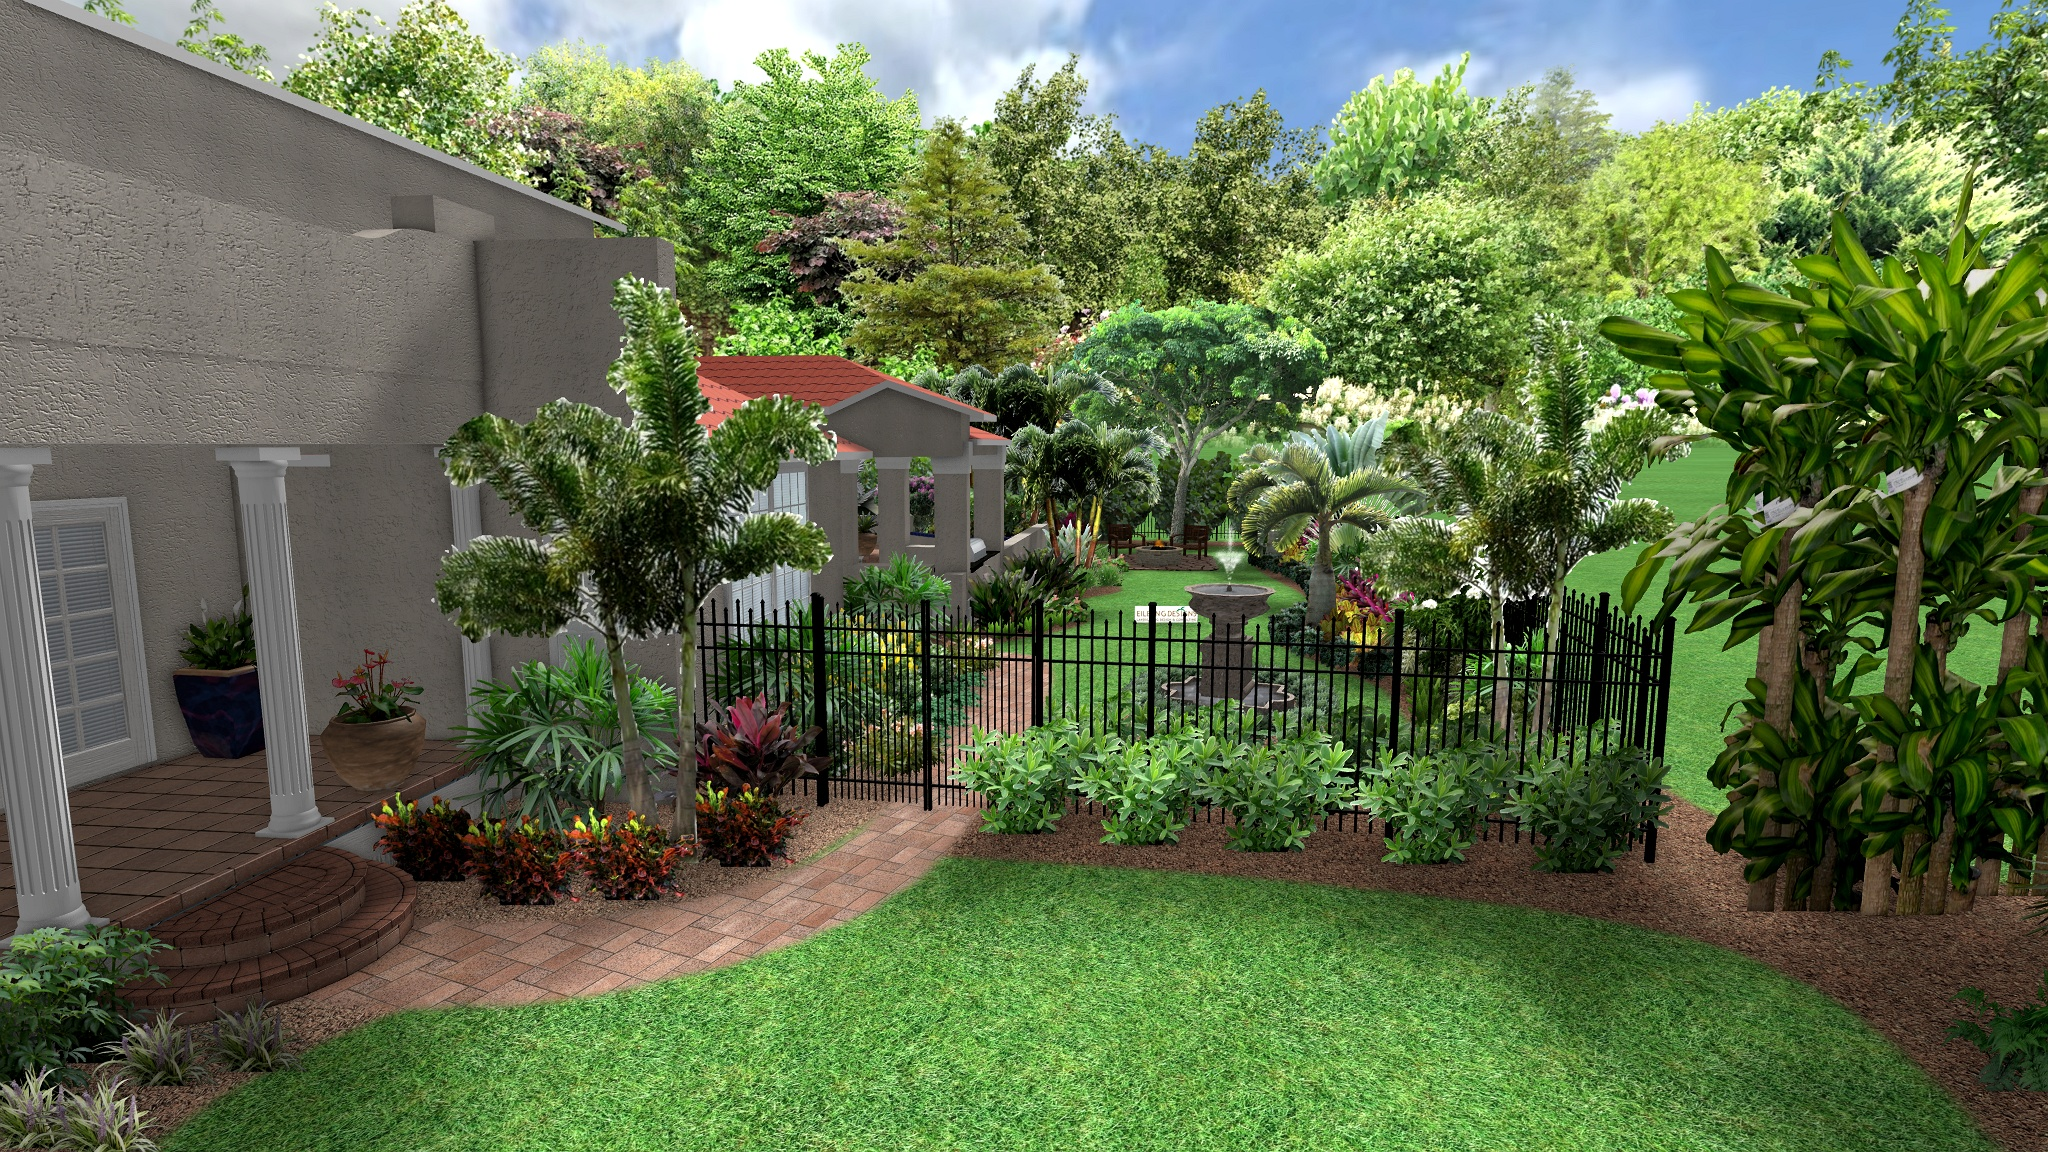 Landscape Architect West Palm Beach FL